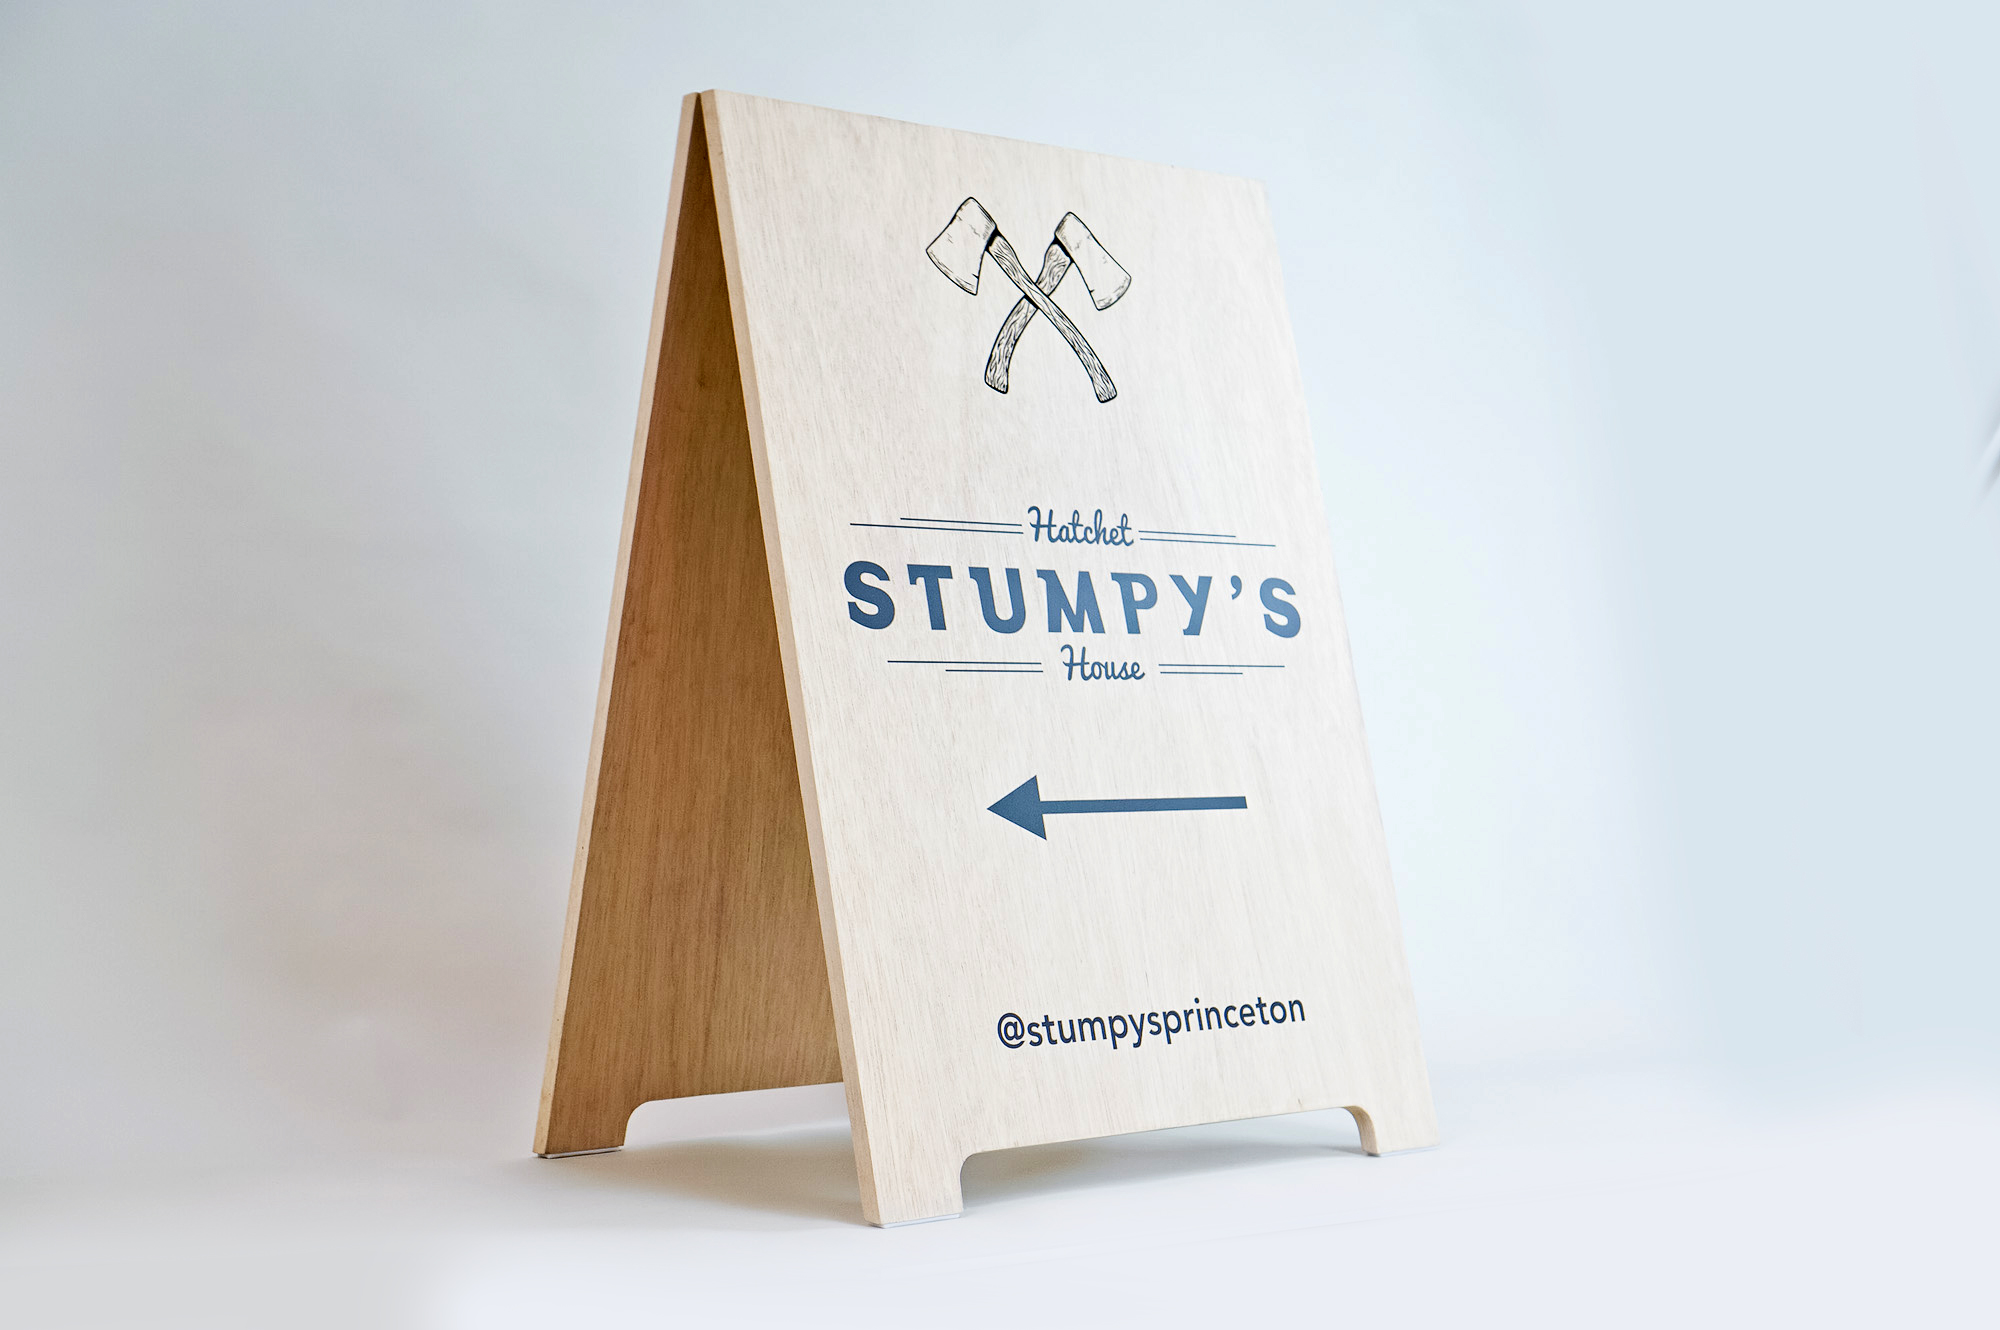 Stumpy's, the first hatchet throwing venue in the U.S.